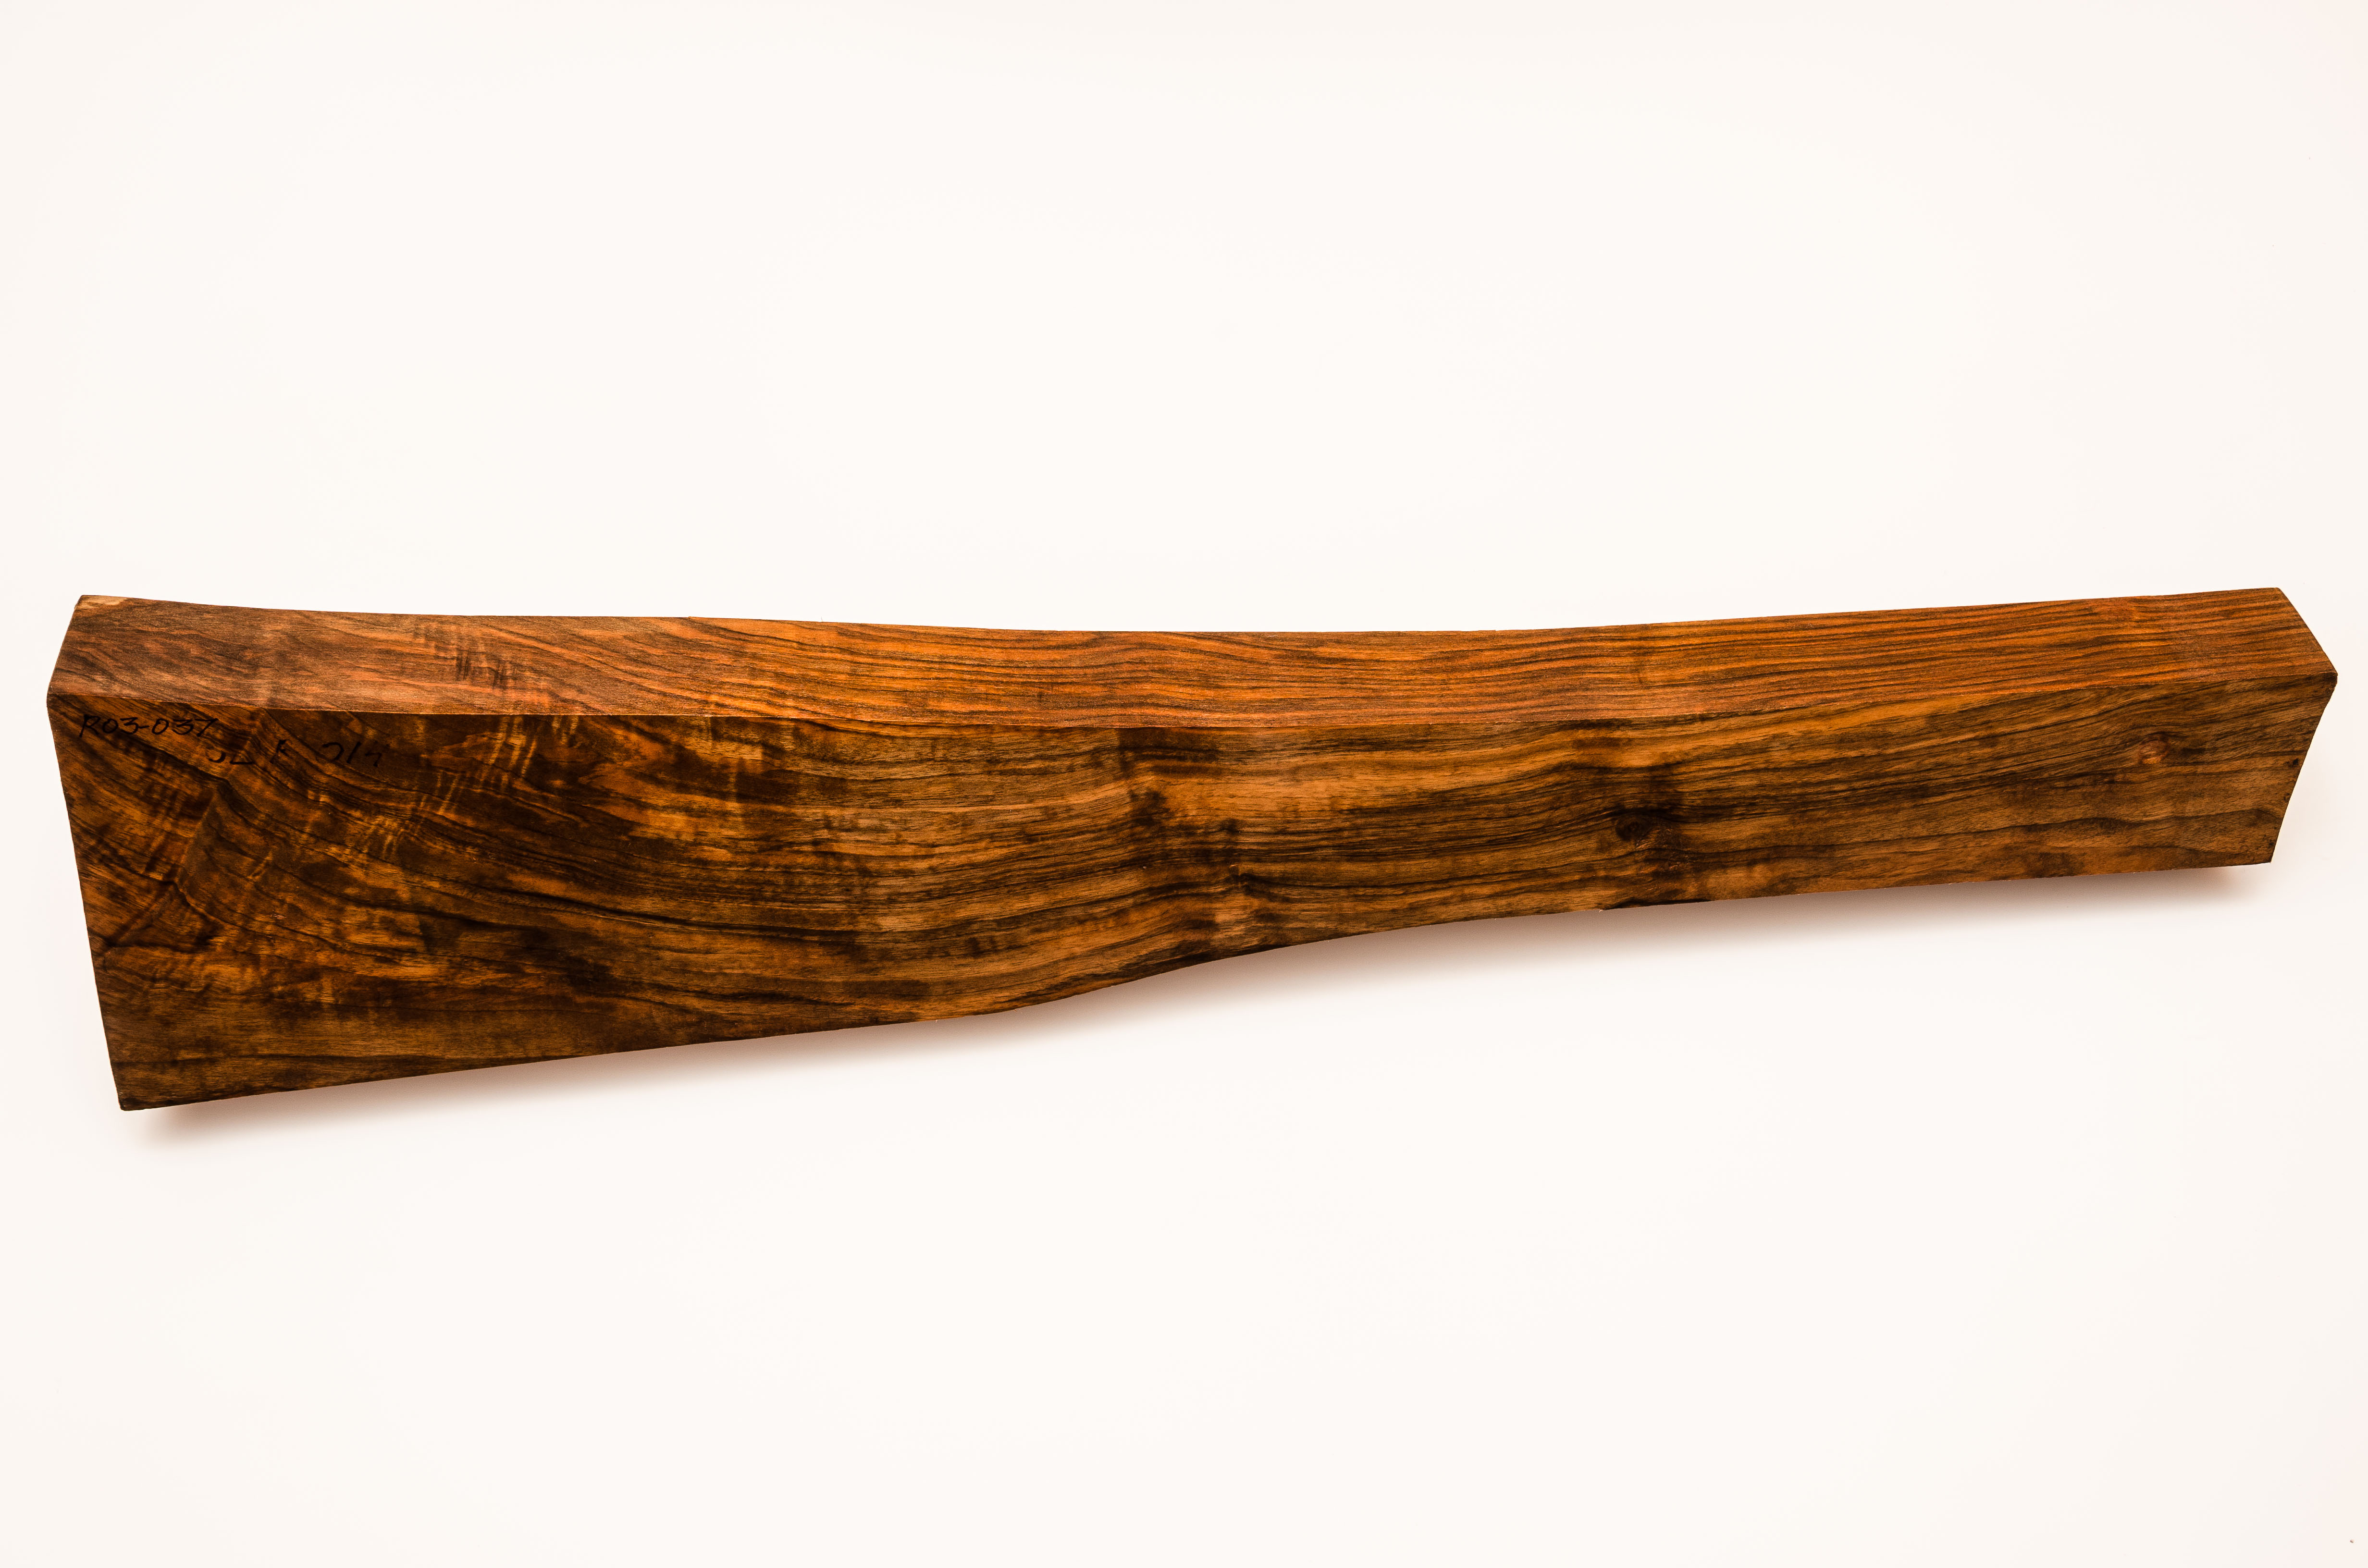 walnut_stock_blanks_for_guns_and_rifles-1183